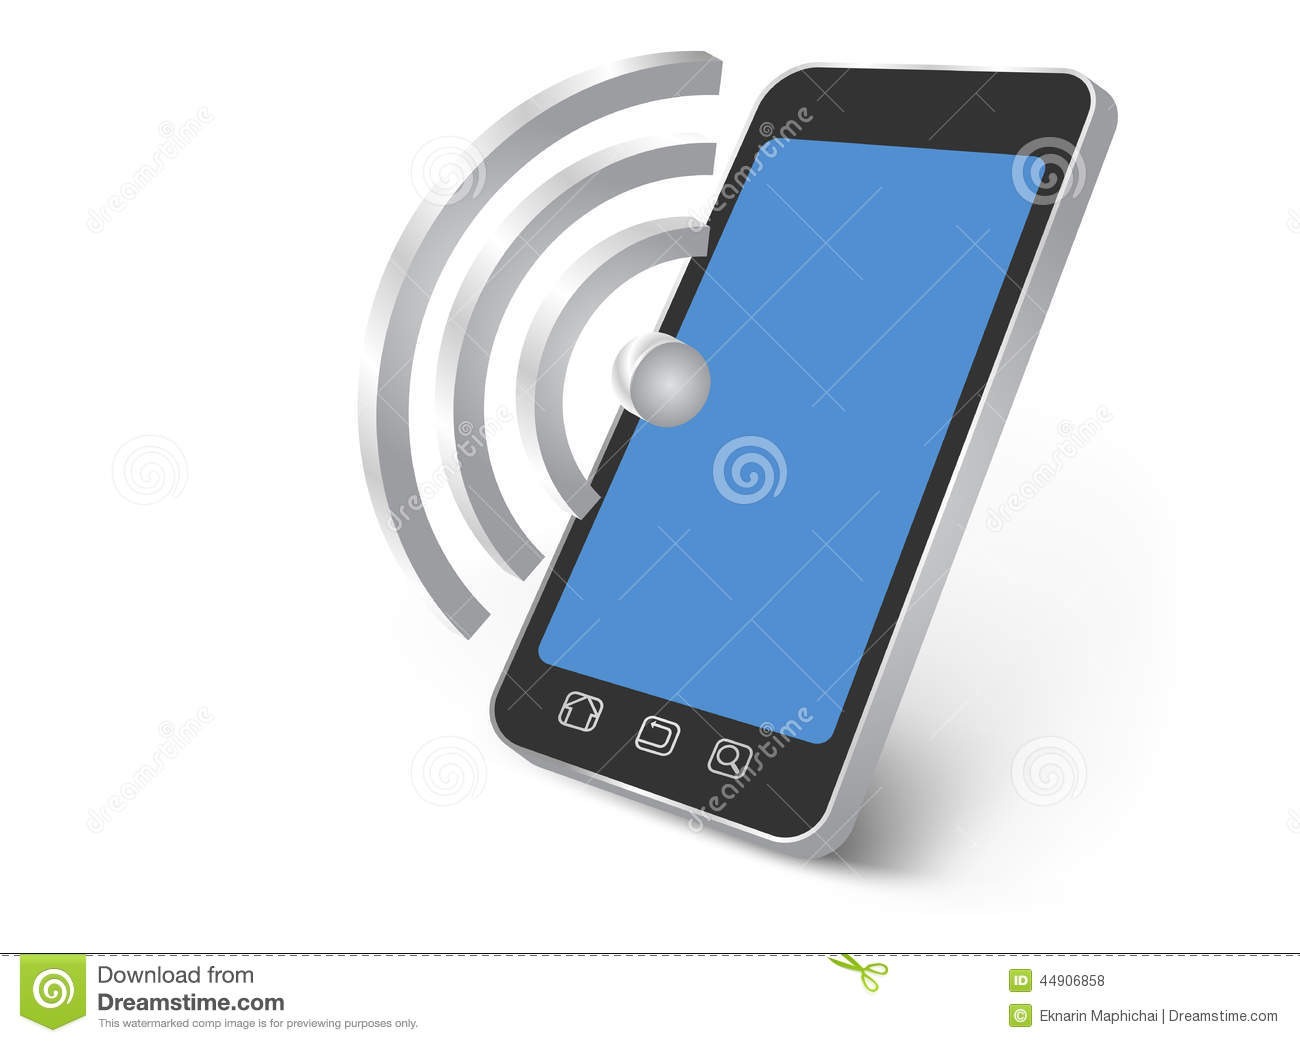 Mobile HotSpot - Android Apps on Google Play